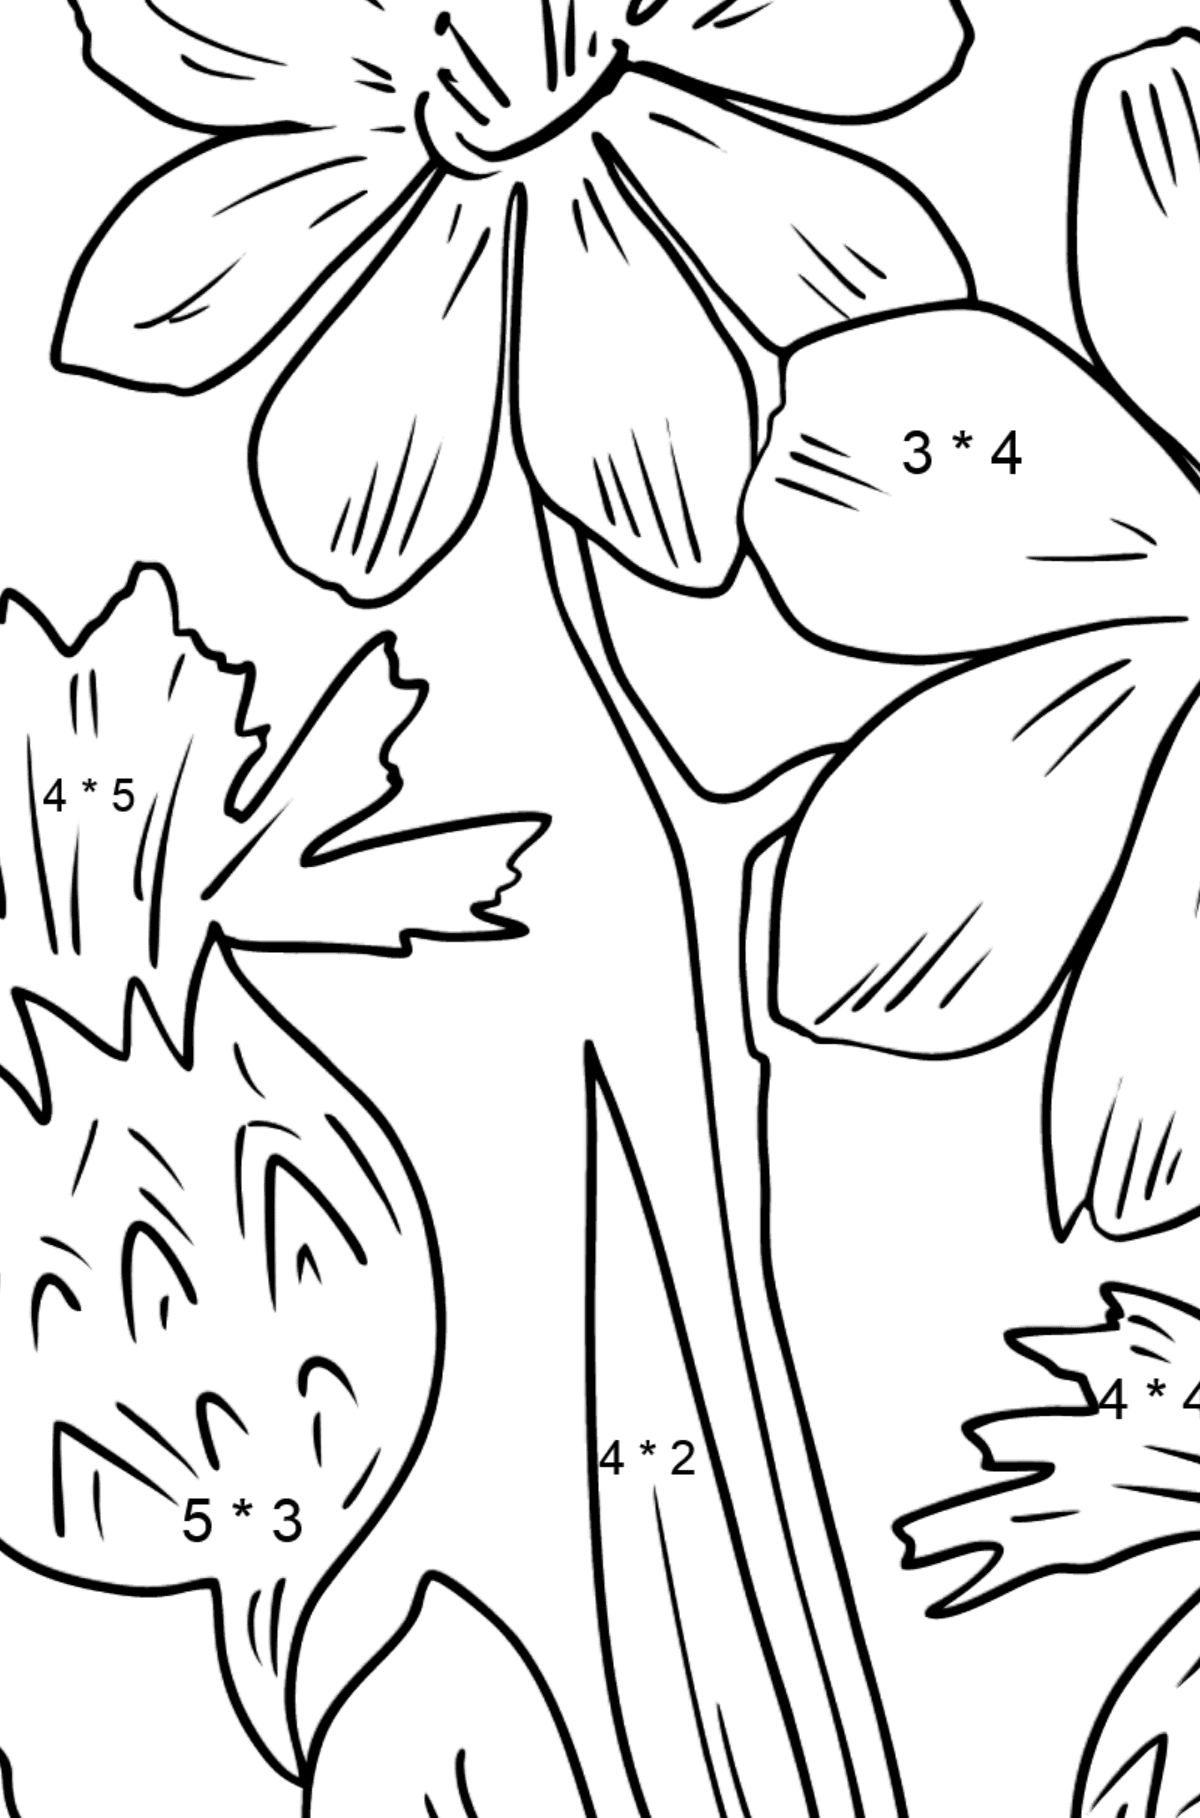 Flower Coloring Page - flowers in the meadow - Math Coloring - Multiplication for Kids